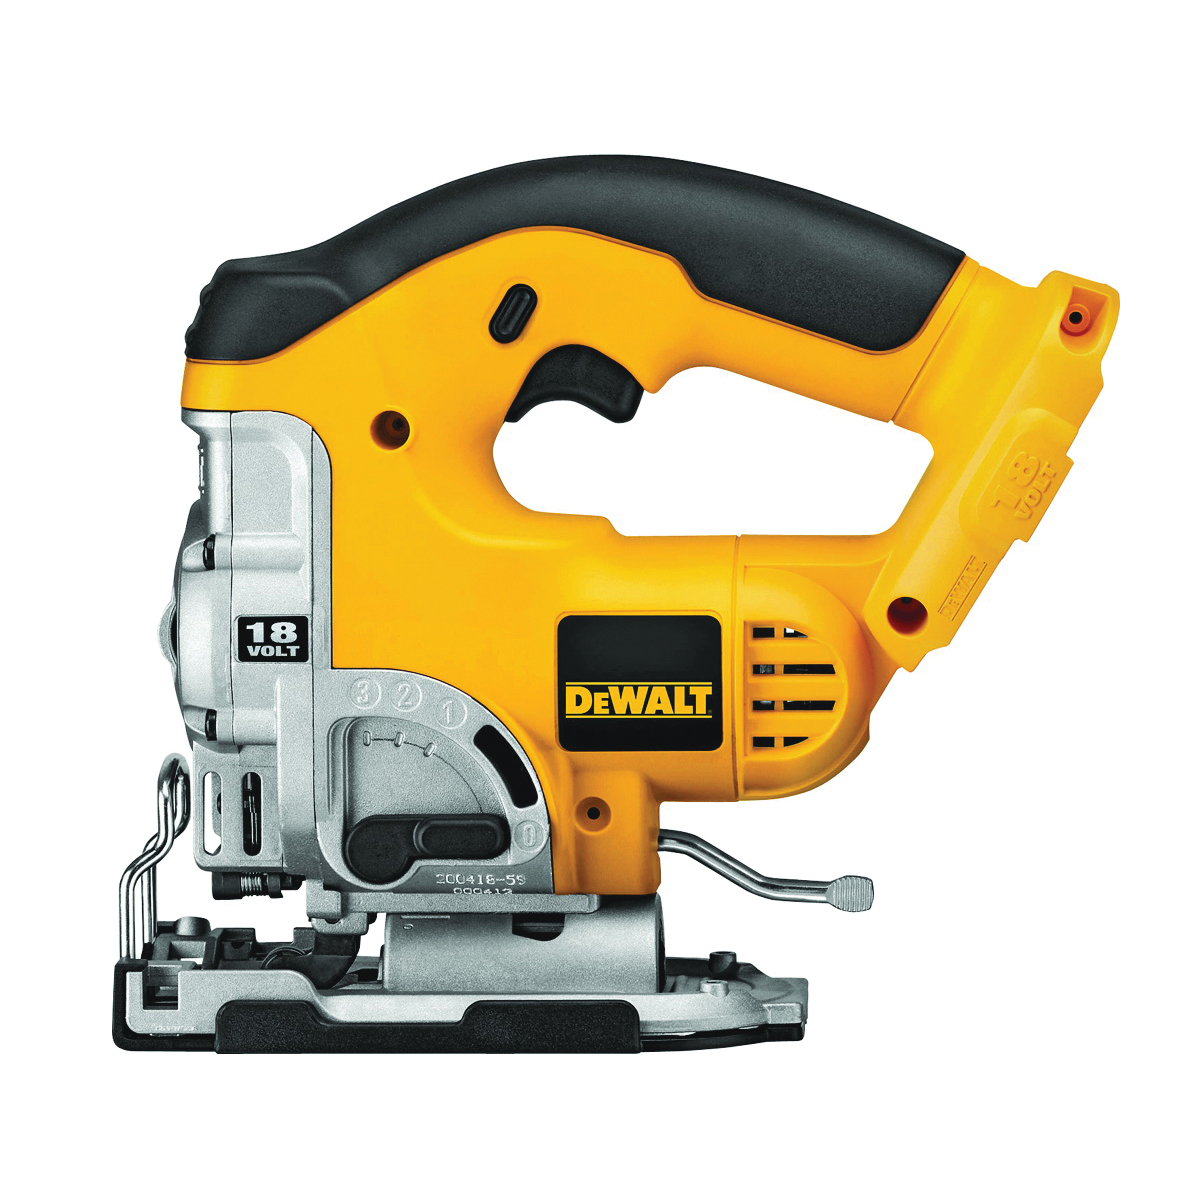 Picture of DeWALT DC330B Jig Saw, Bare Tool, 18 V Battery, 2.4 Ah, 1 in L Stroke, 0 to 3000 spm SPM, Battery Included: No